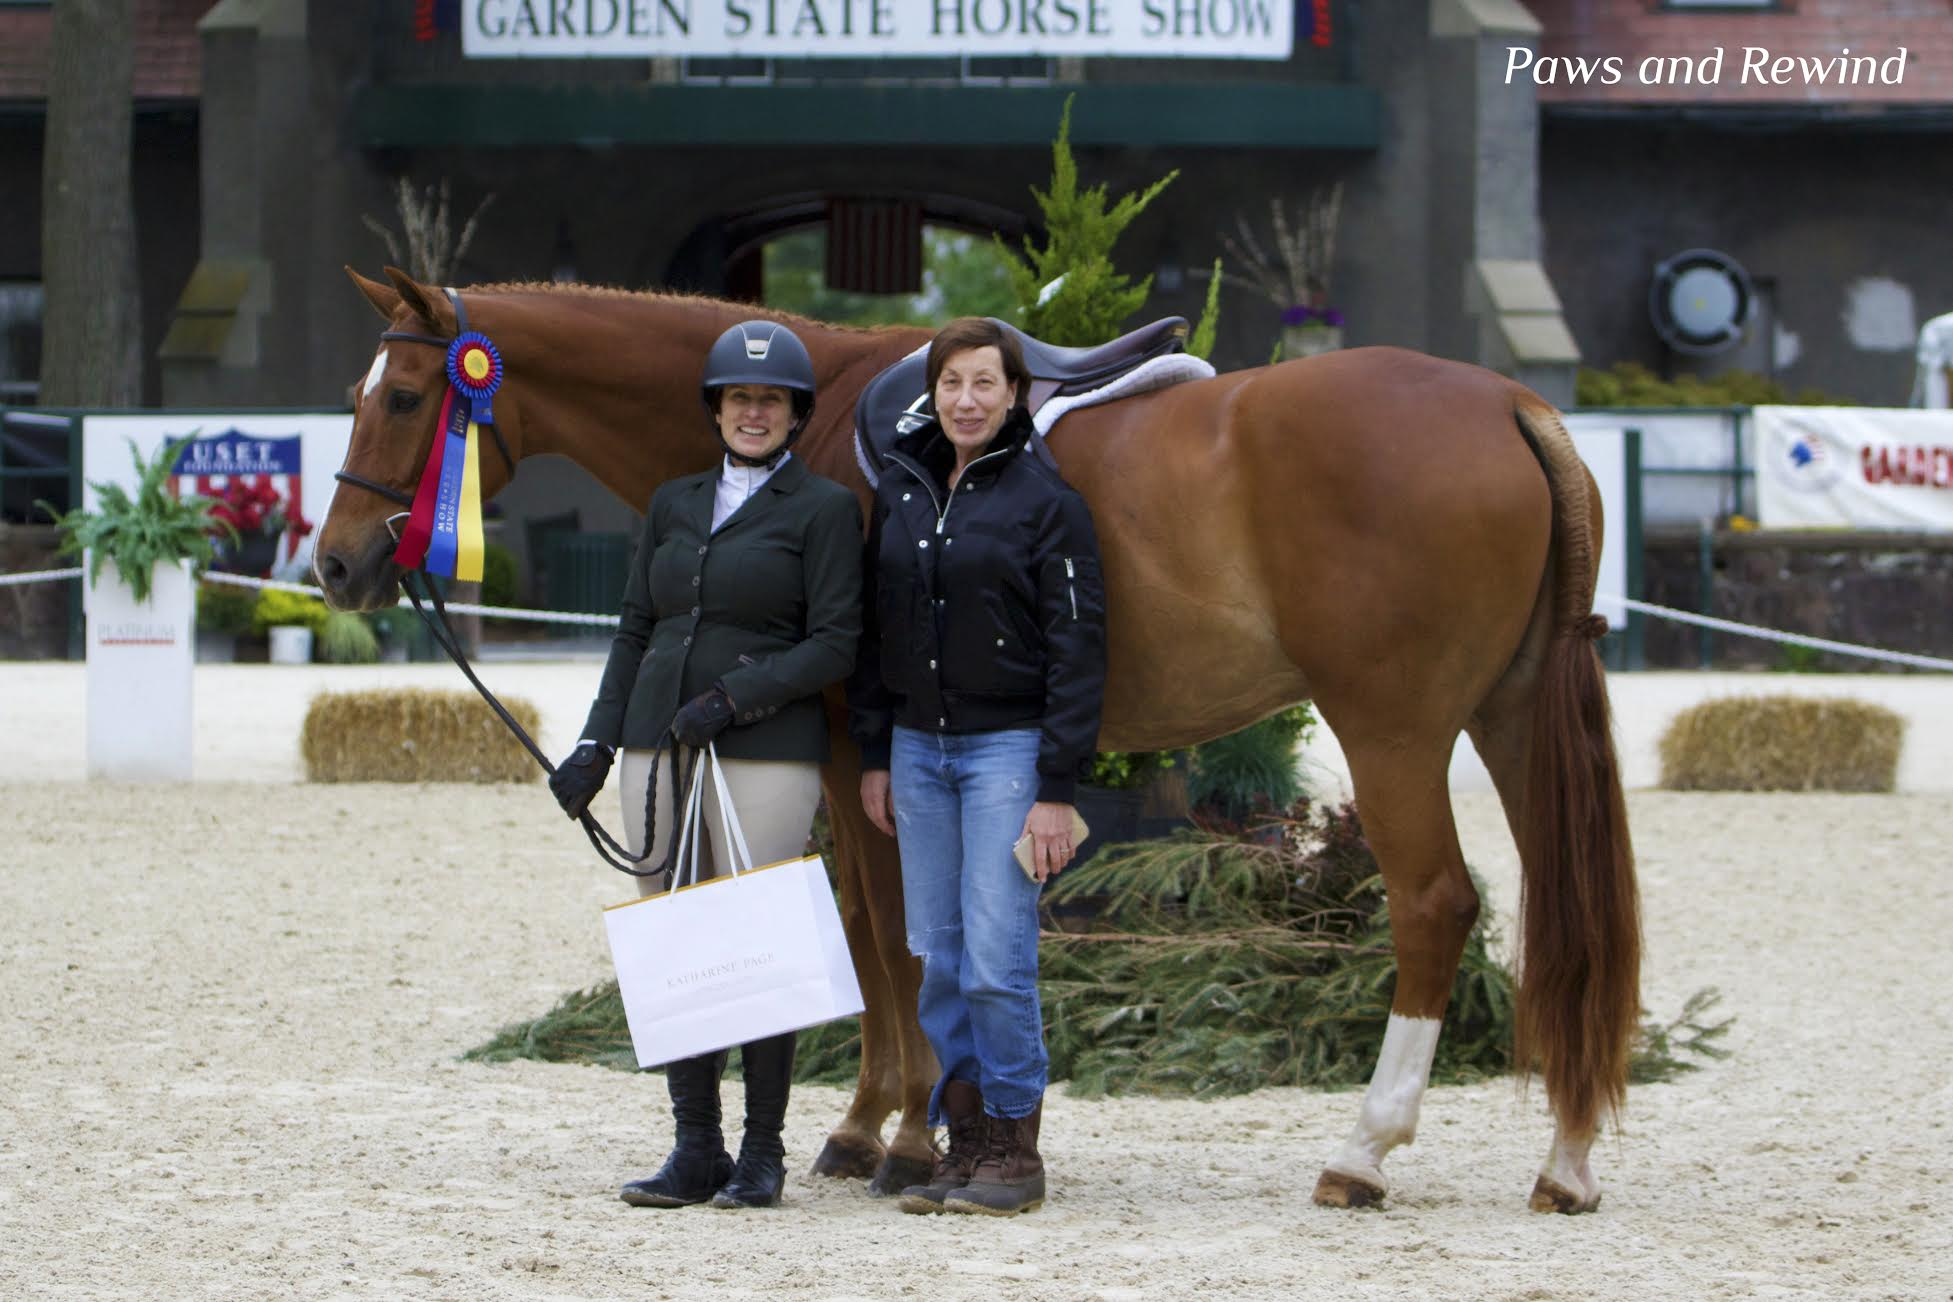 Adult Amateur Hunter Champion Karen Arrigoni and Katharine Page. Photo by Paws and Rewind